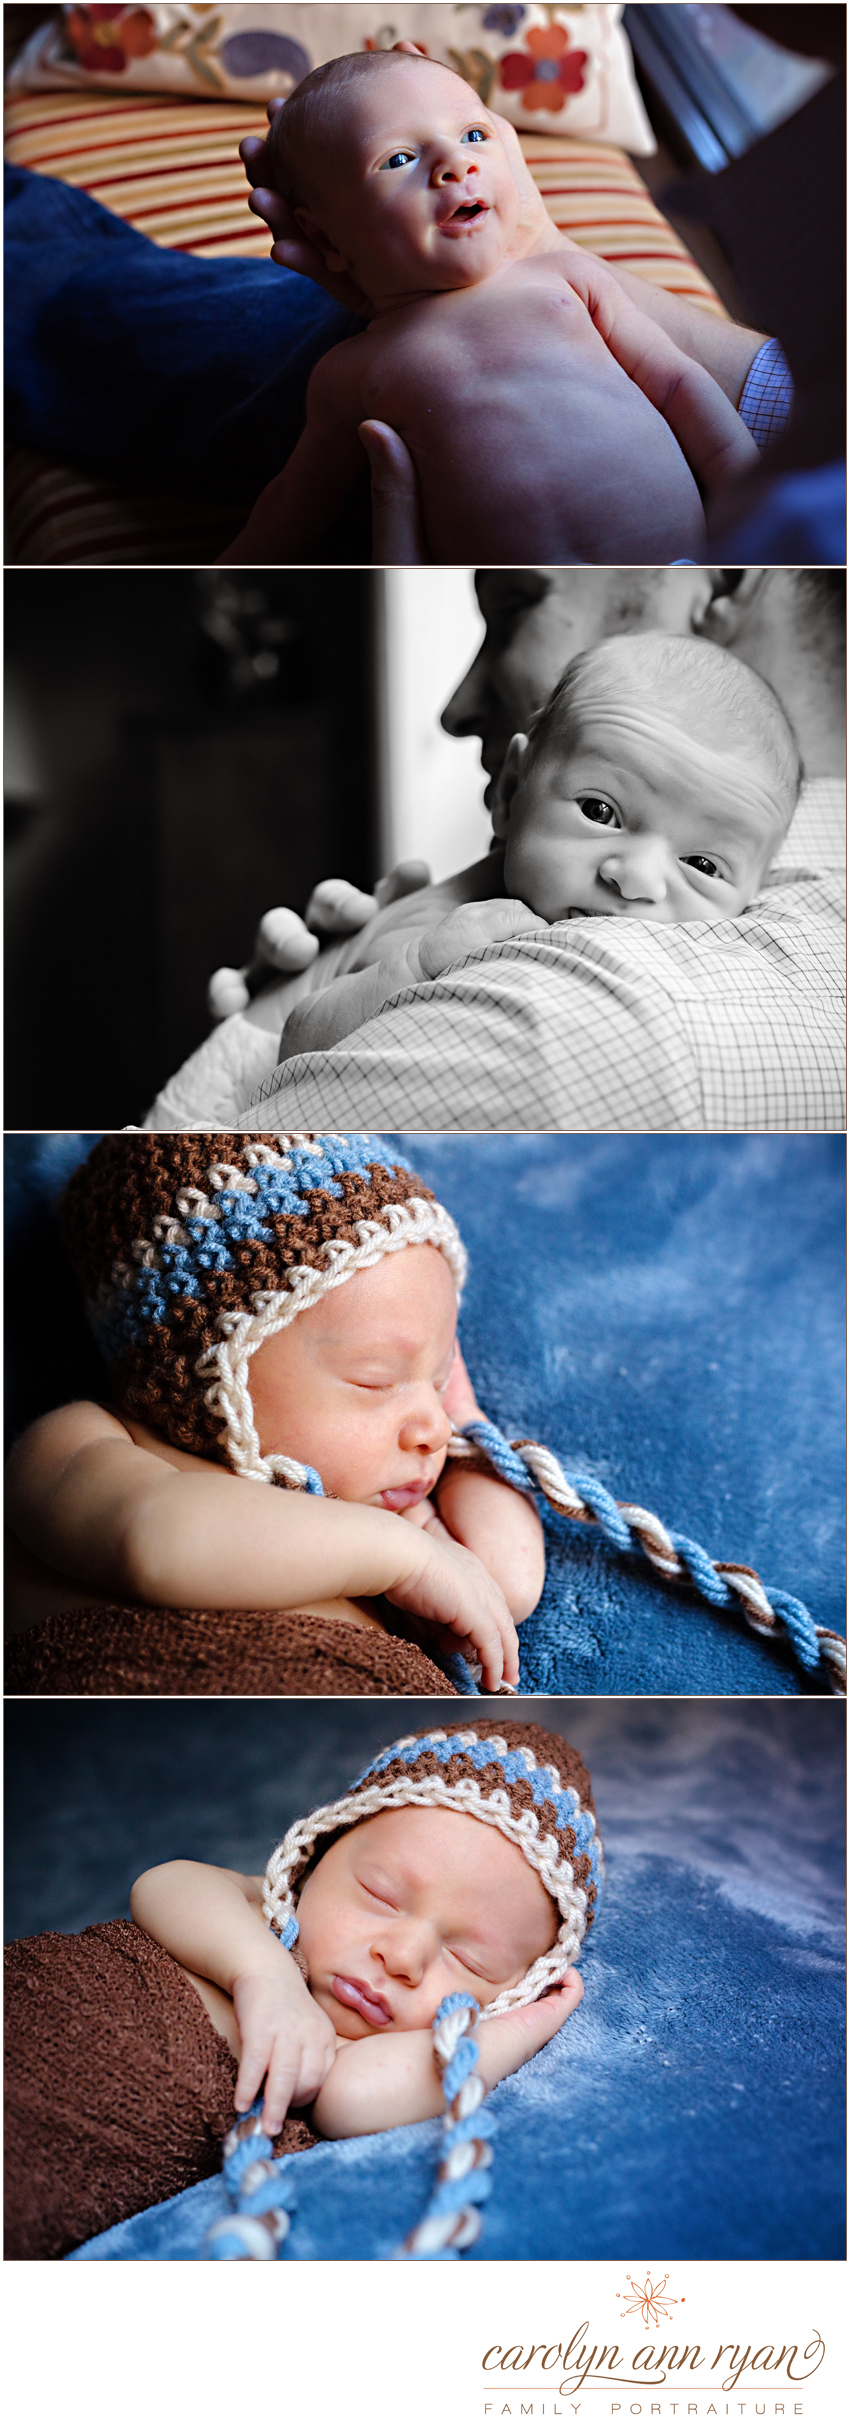 newborn portraits photographed by family and child photographer Carolyn Ann Ryan